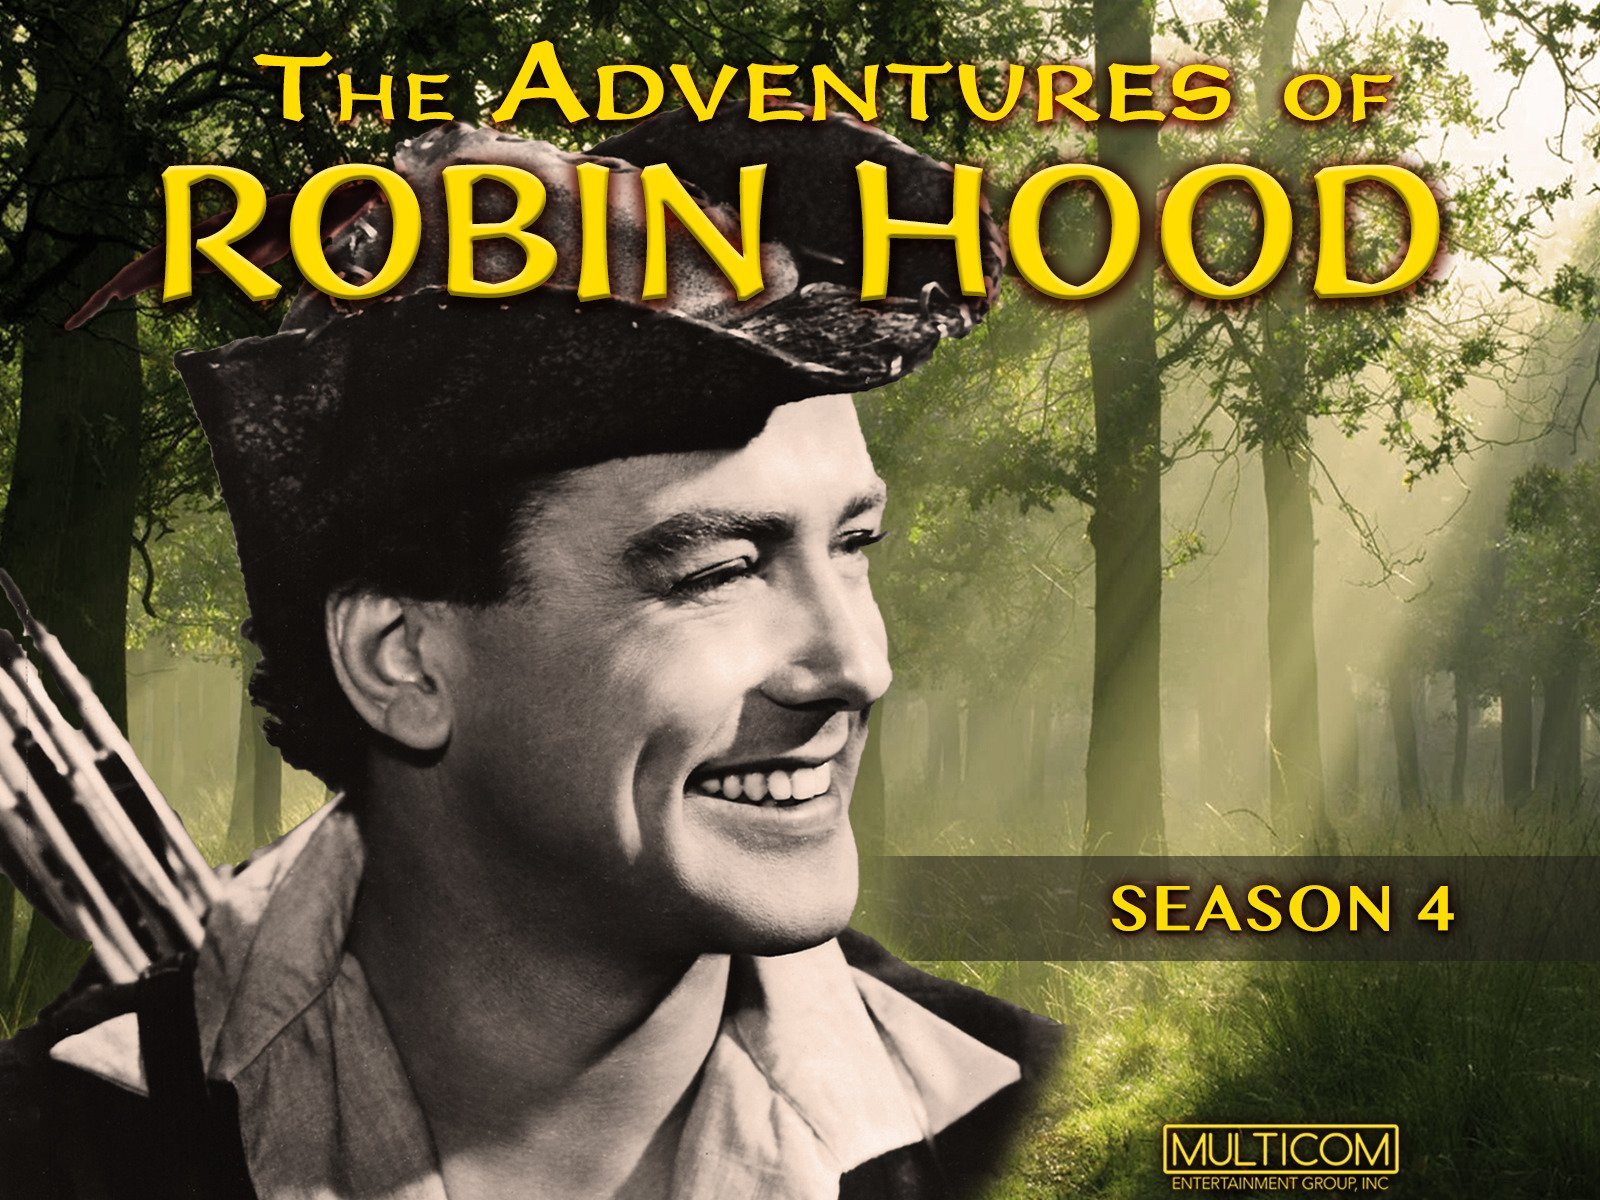 The Adventures of Robin Hood - Season 4